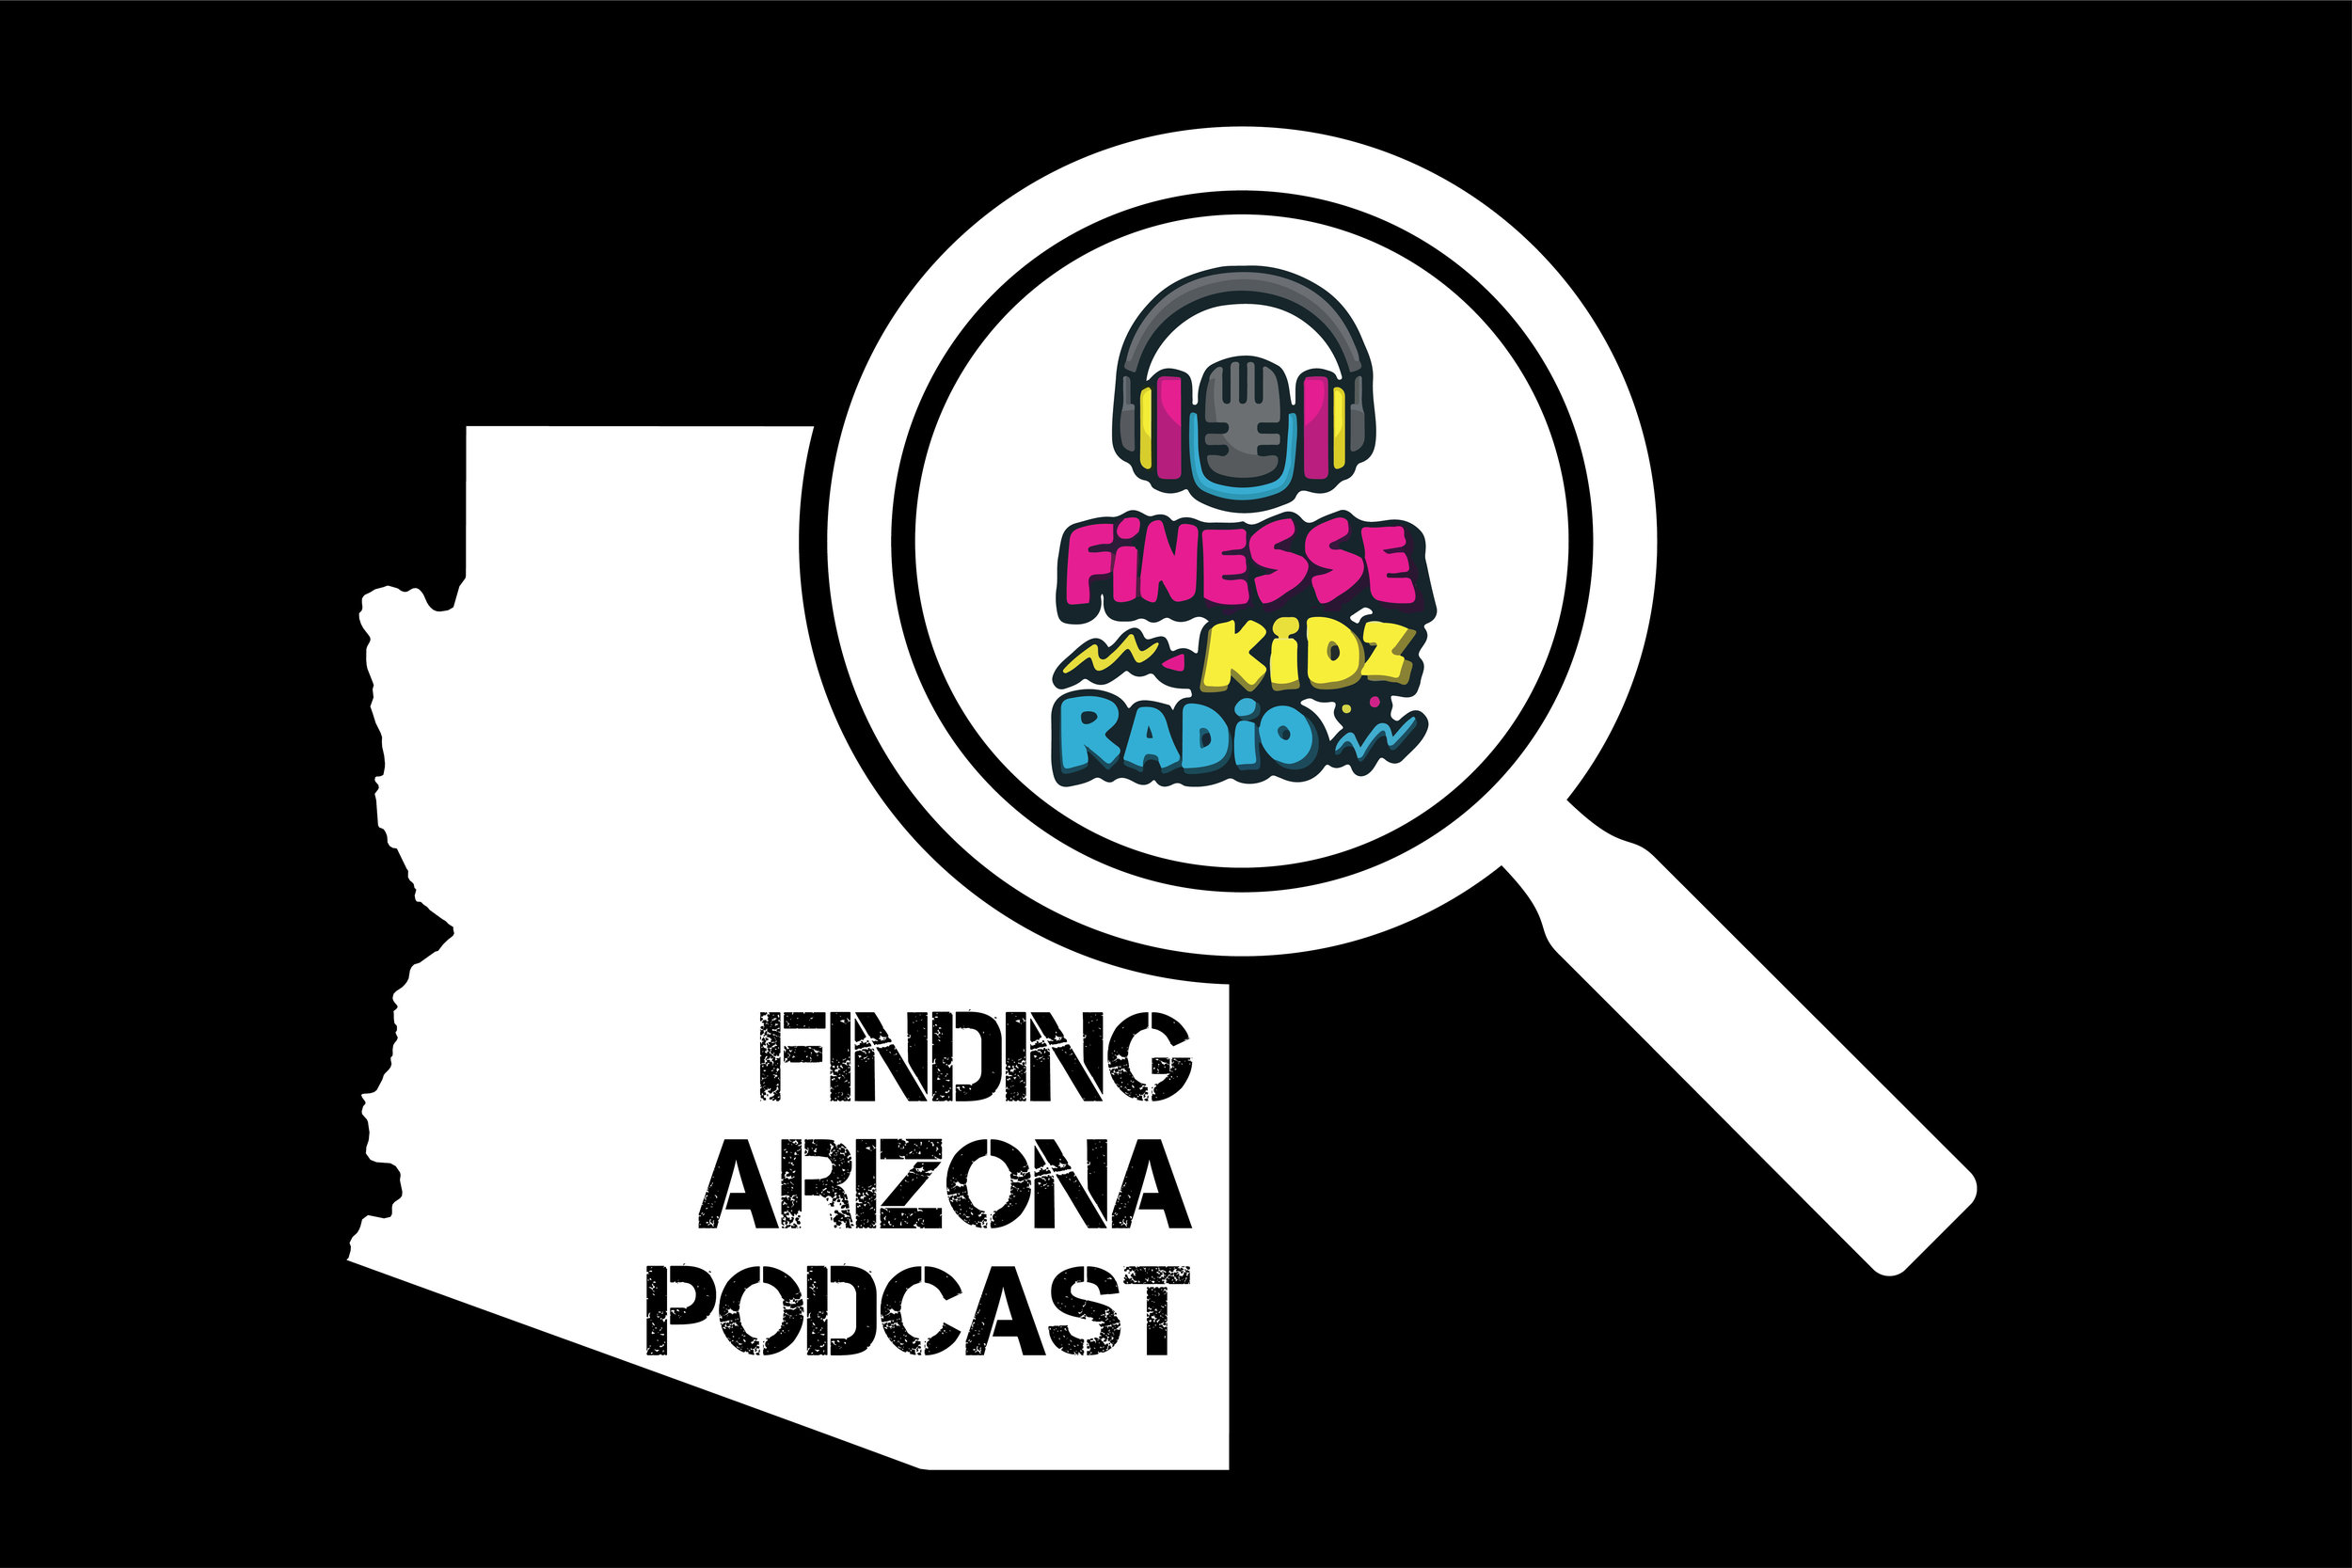 PodCastLogo-FinesseKidzRadio-06.jpg